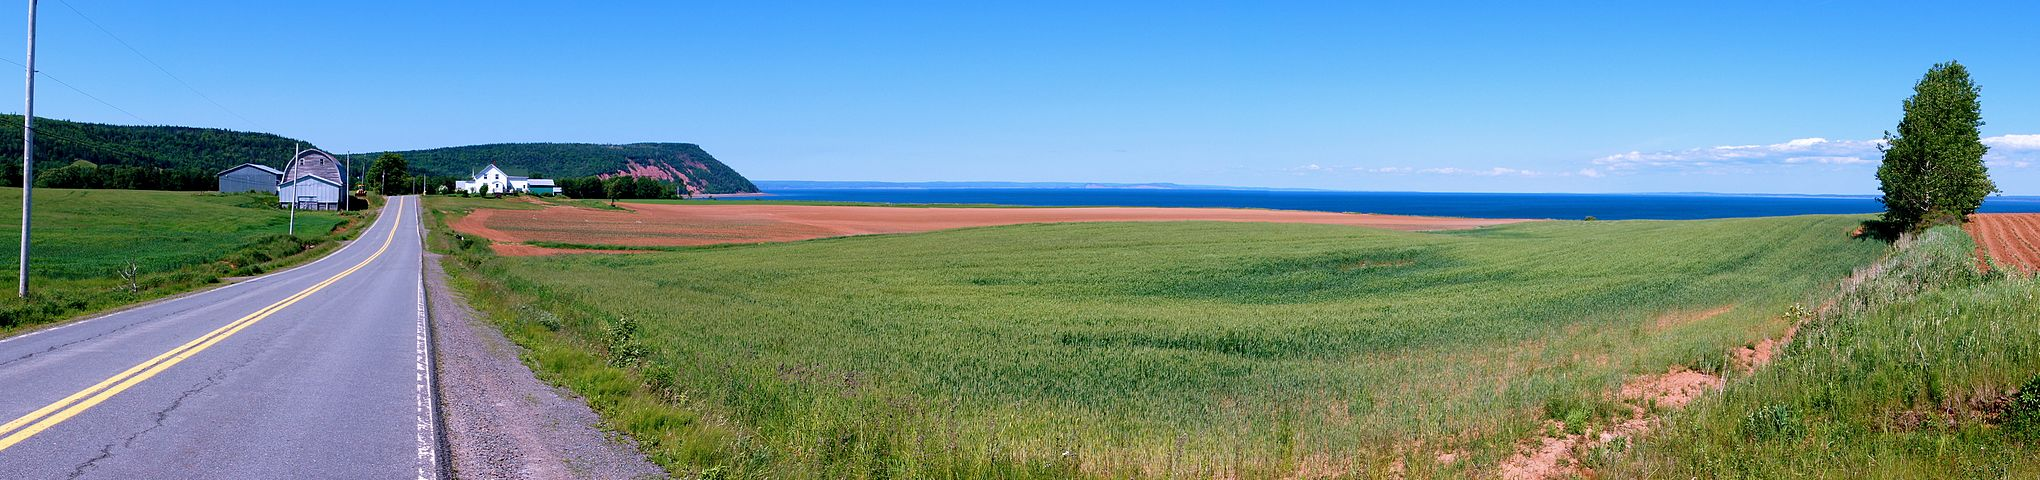 Eastern End. Road leading to Blomidon Provincial Park with the Minas Basin in view to the right.